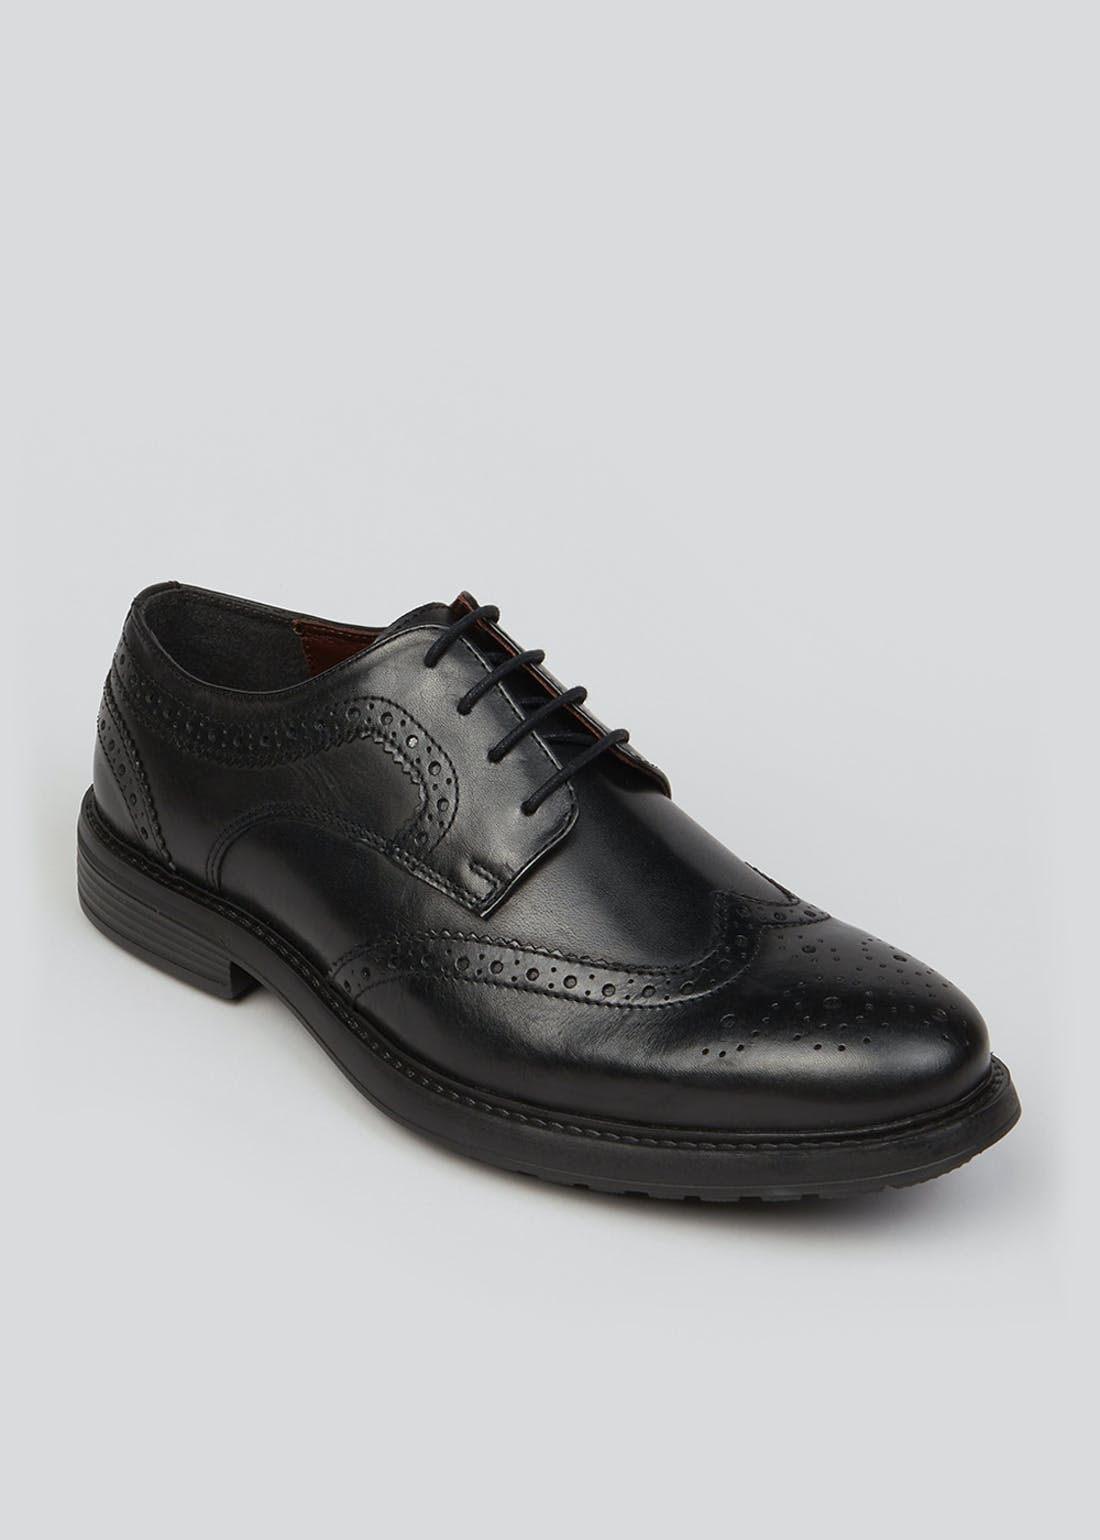 Soleflex Black Real Leather Lightweight Brogues